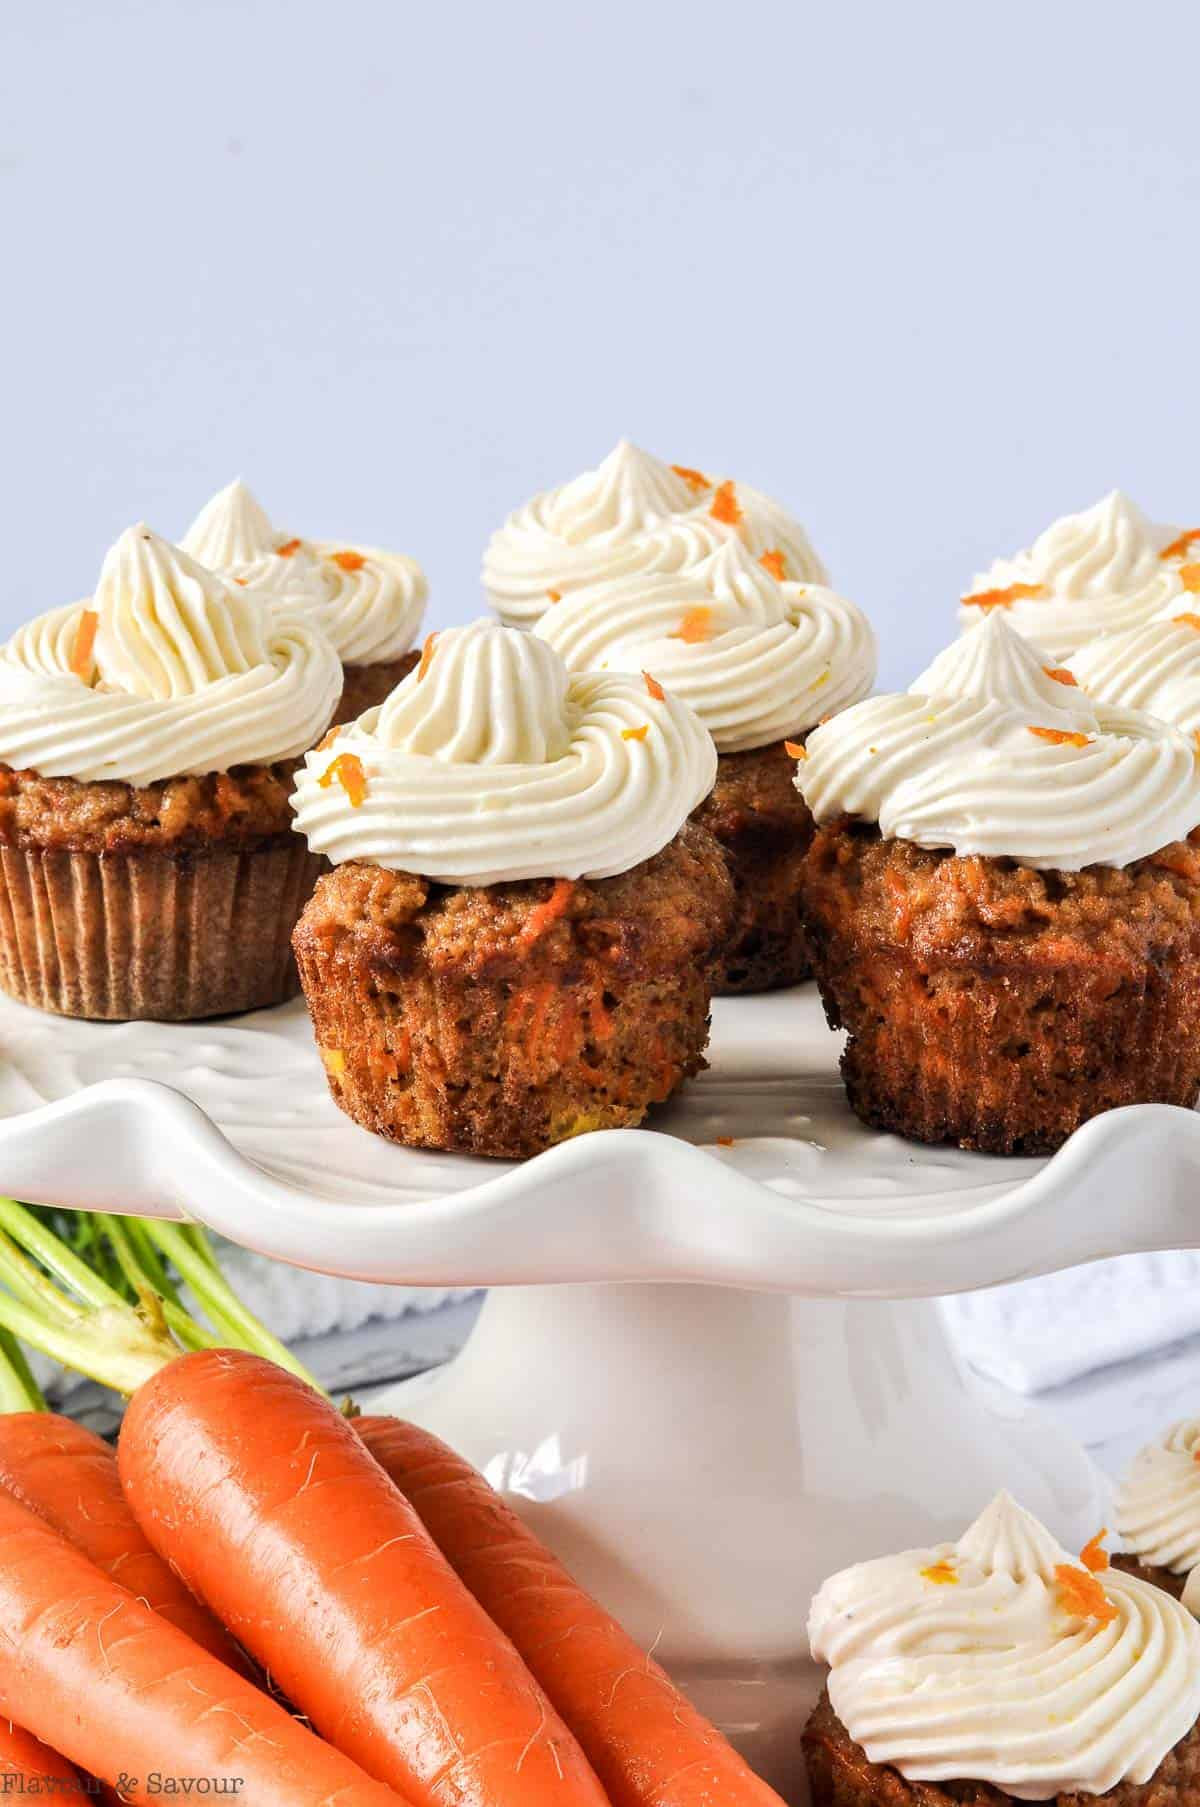 Mini Gluten-Free Carrot Cake Cupcakes on a white pedestal with fresh carrots in the foreground